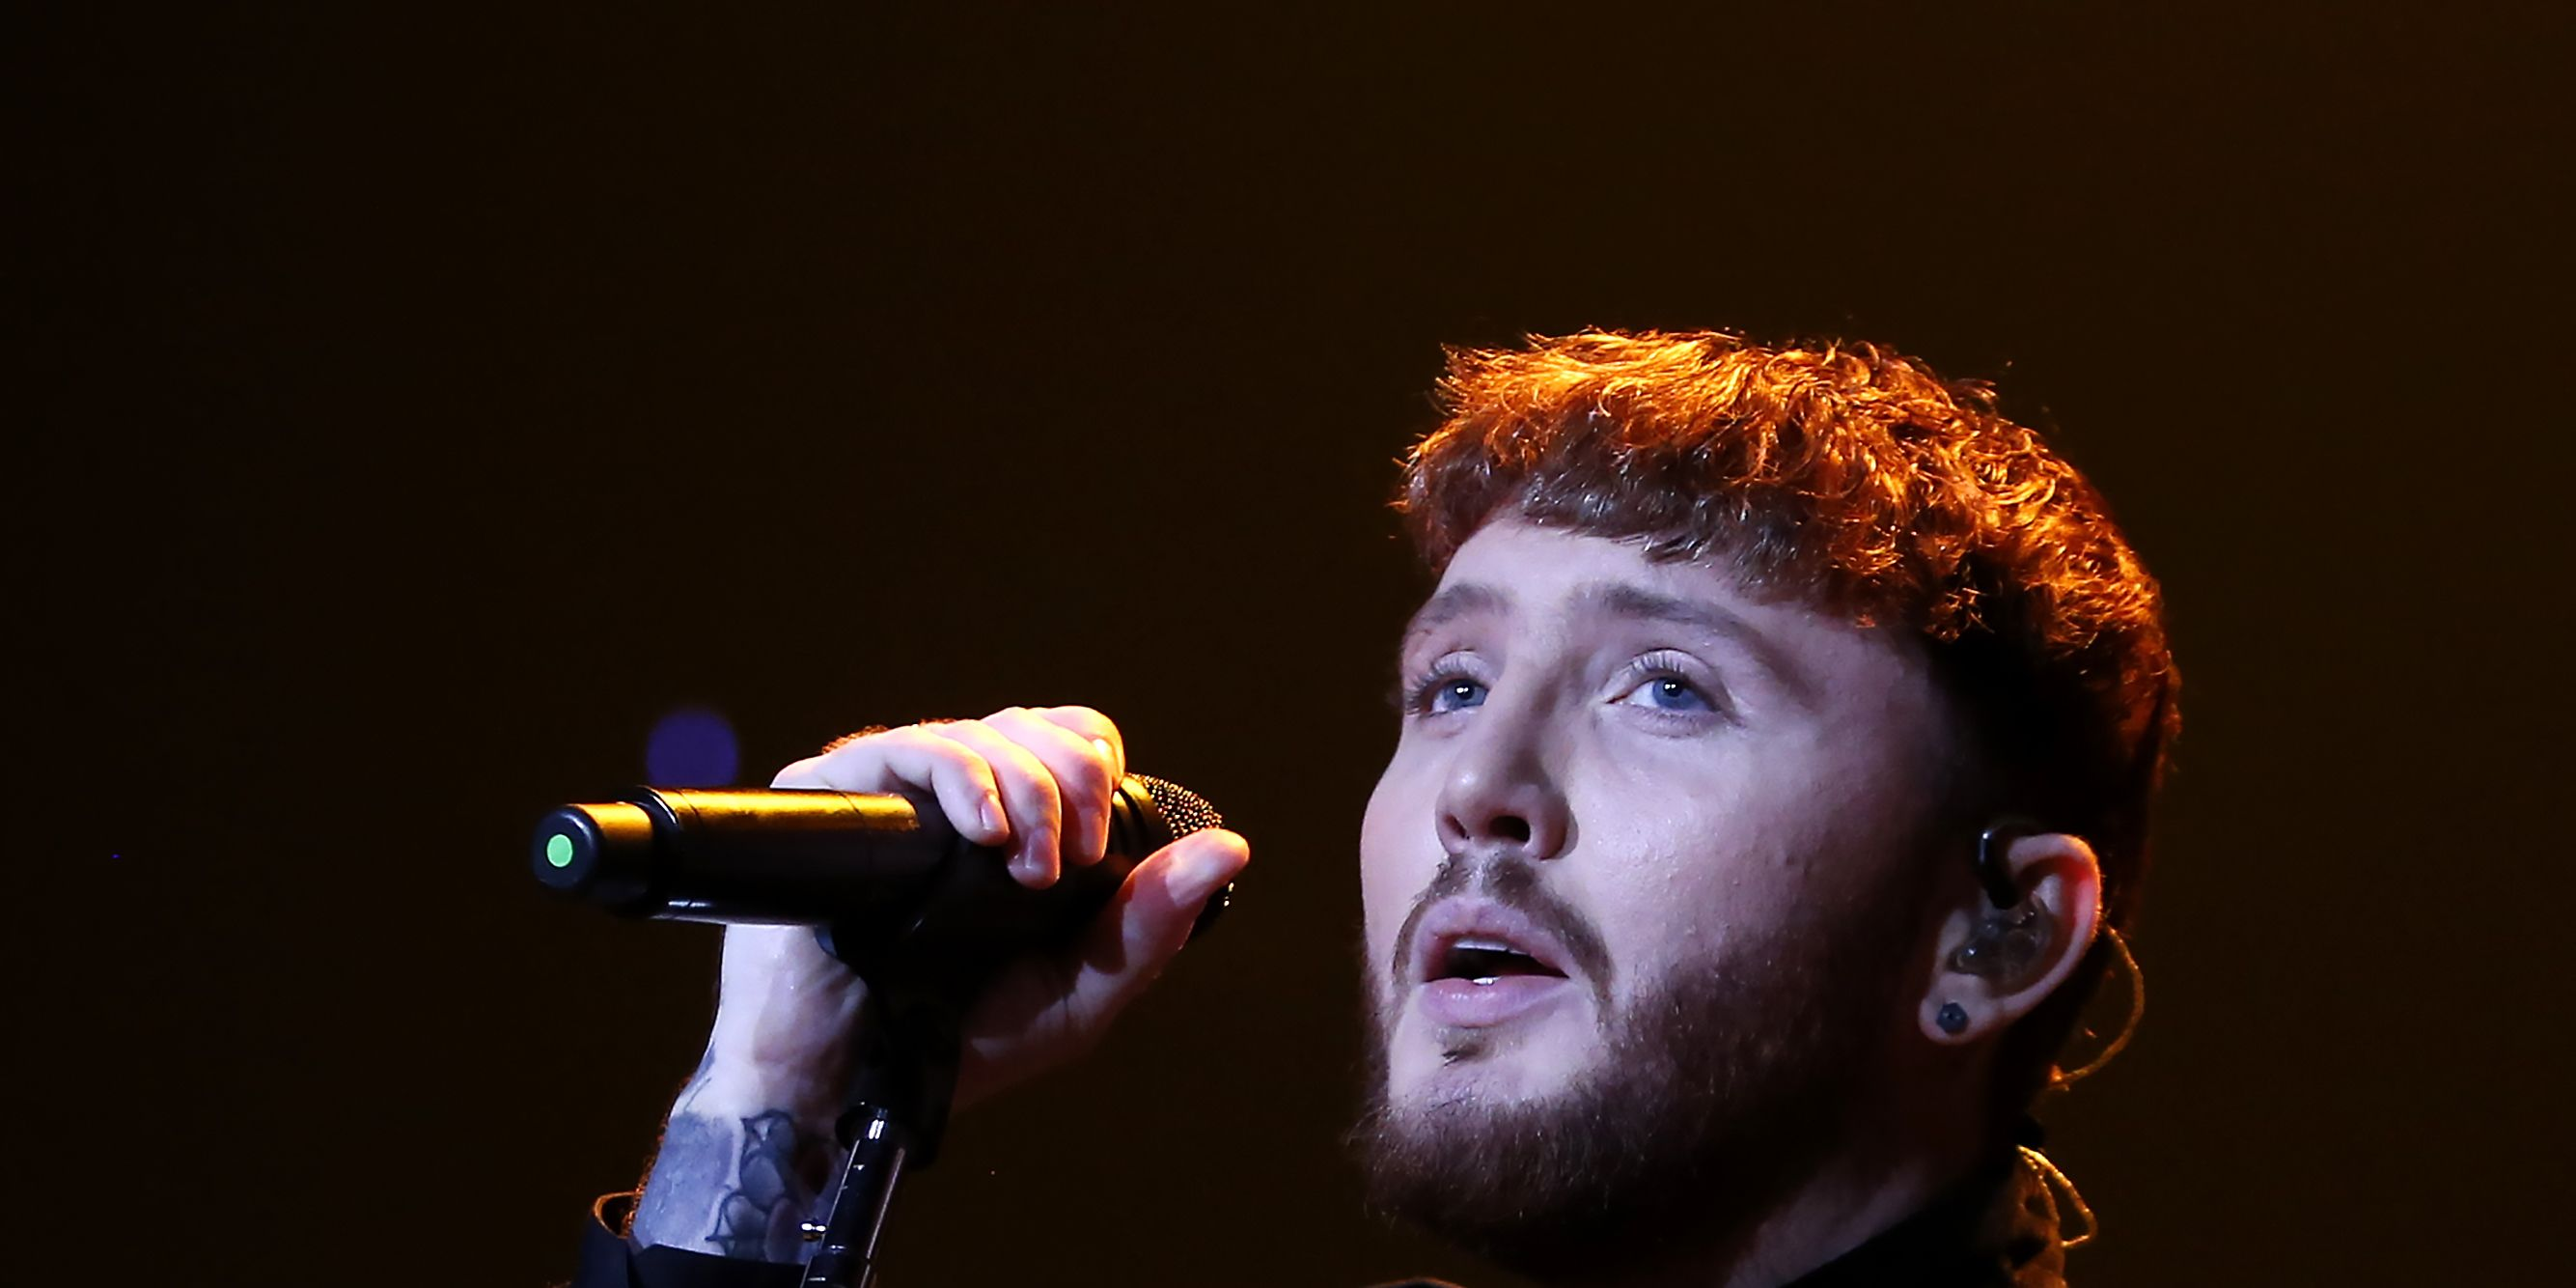 James Arthur performs at SSE Arena Wembley in November 2017